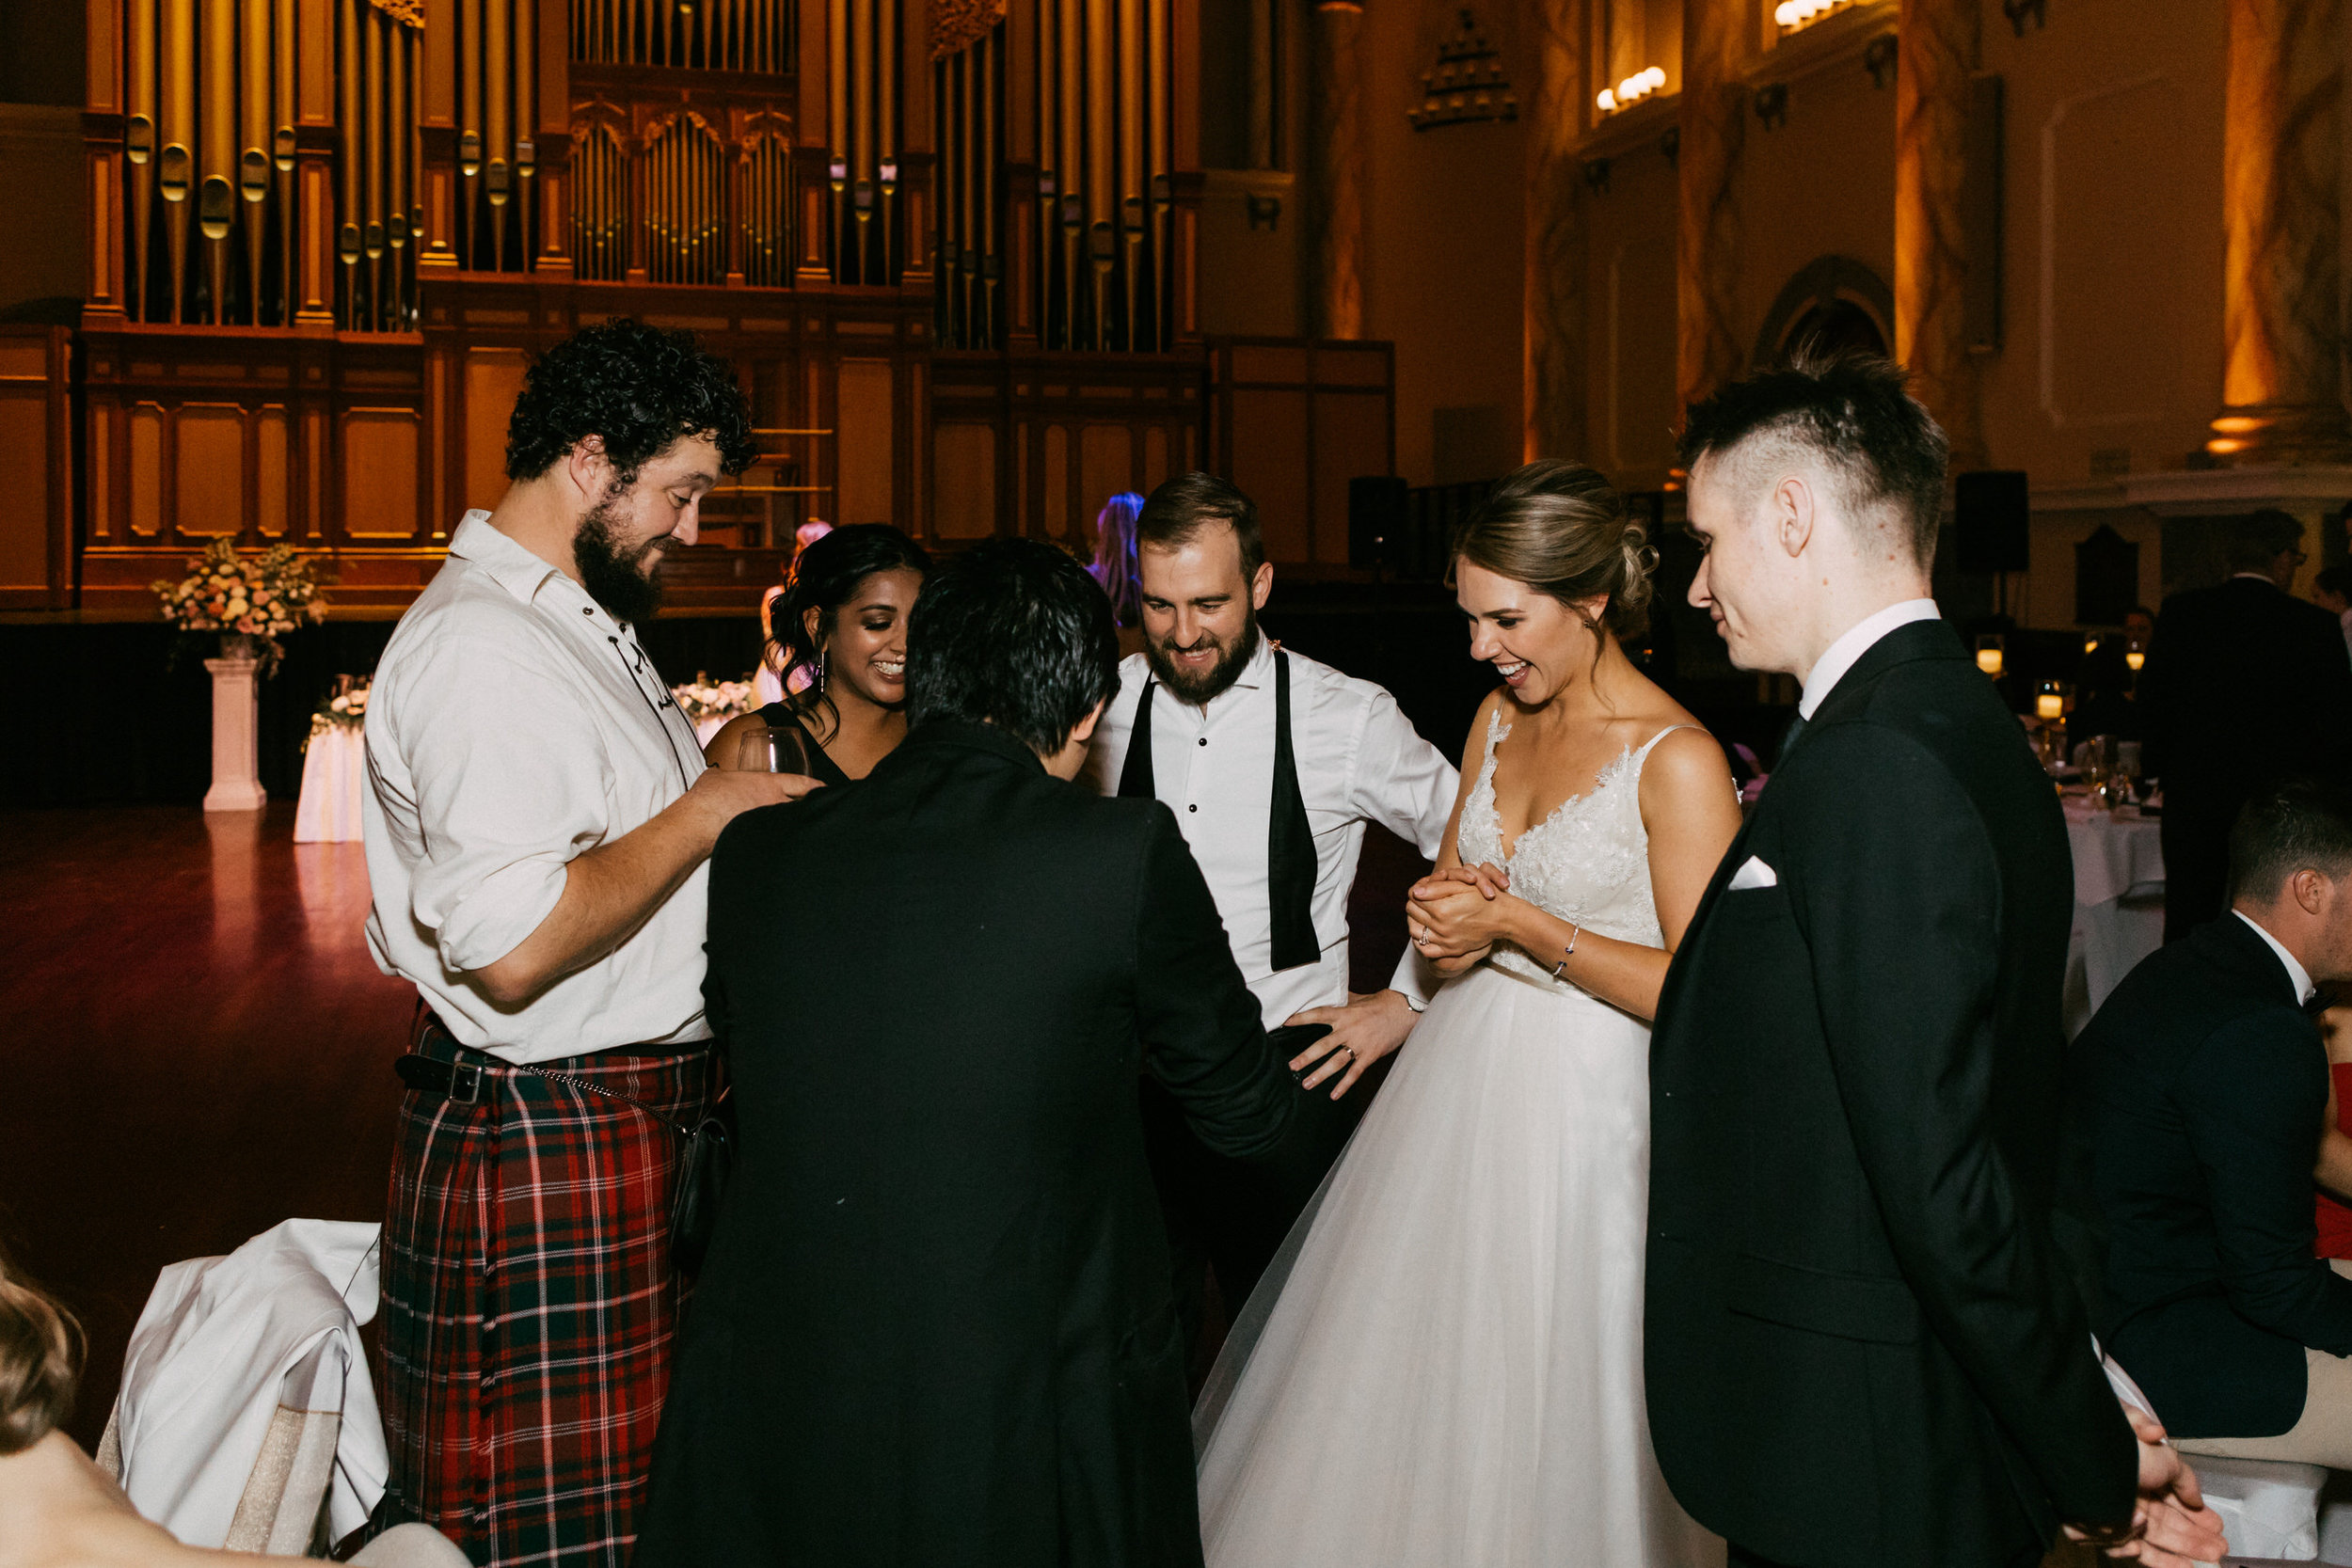 Adelaide Wedding 2019 208.jpg